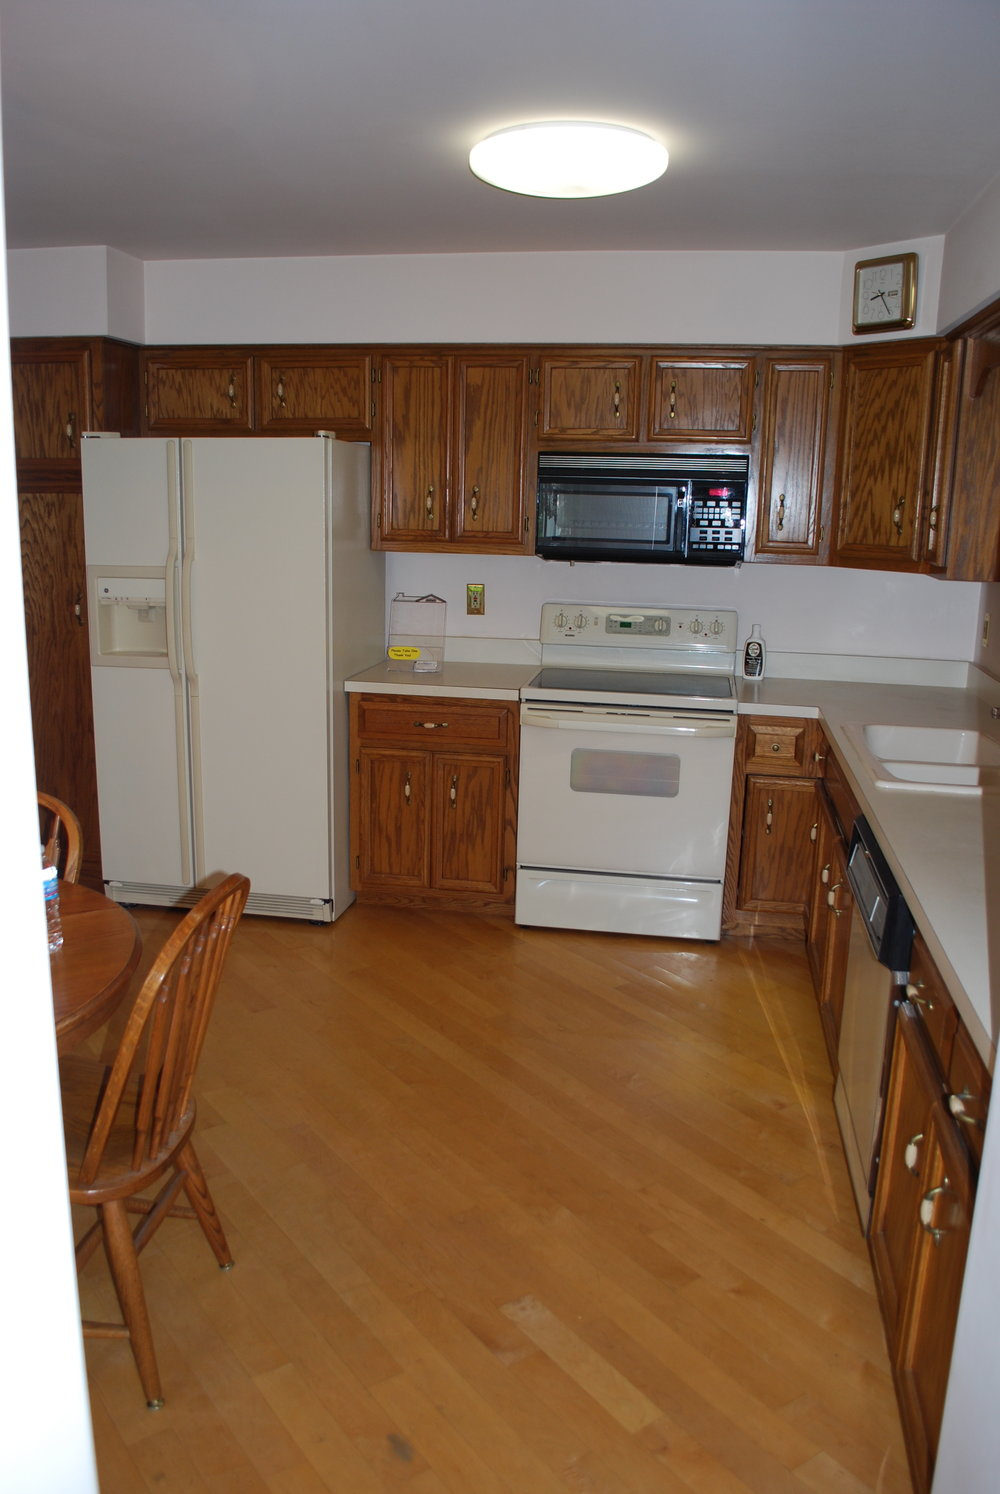 Kitchen Before Updating in this Naperville Illinois Townhome.  Updating Kitchens & Bathrooms in Naperville Illinois & Beyond.